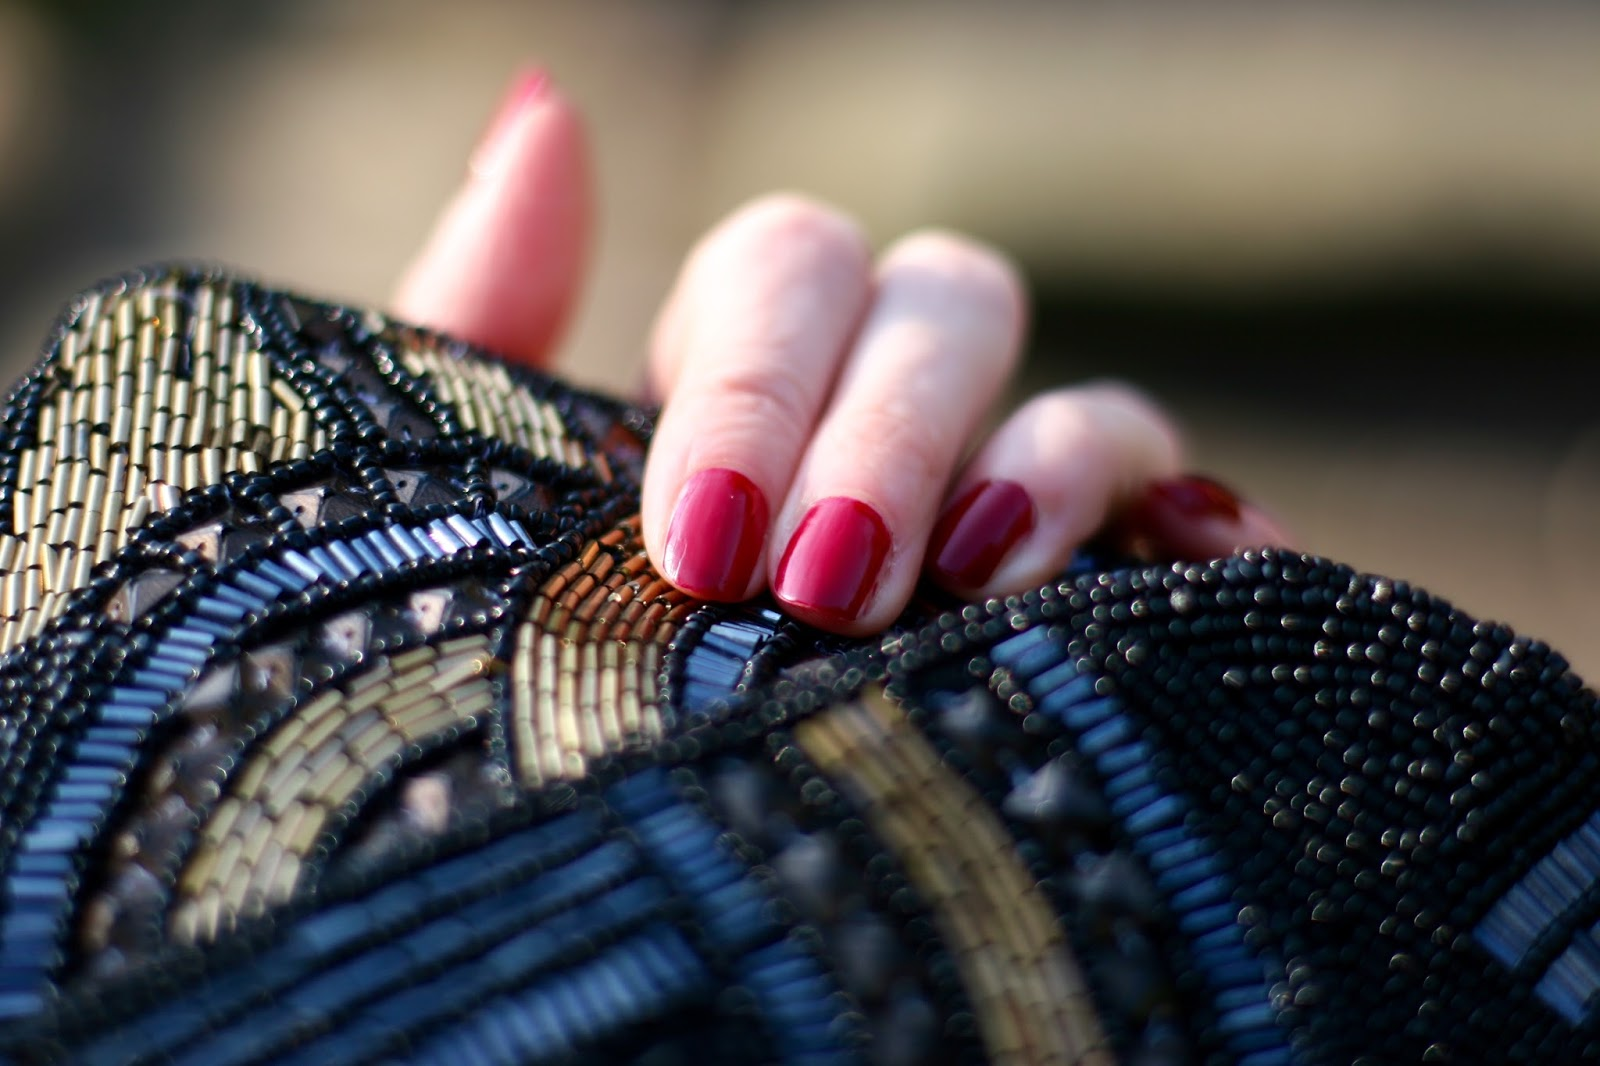 Red nails and a beaded clutch bag.